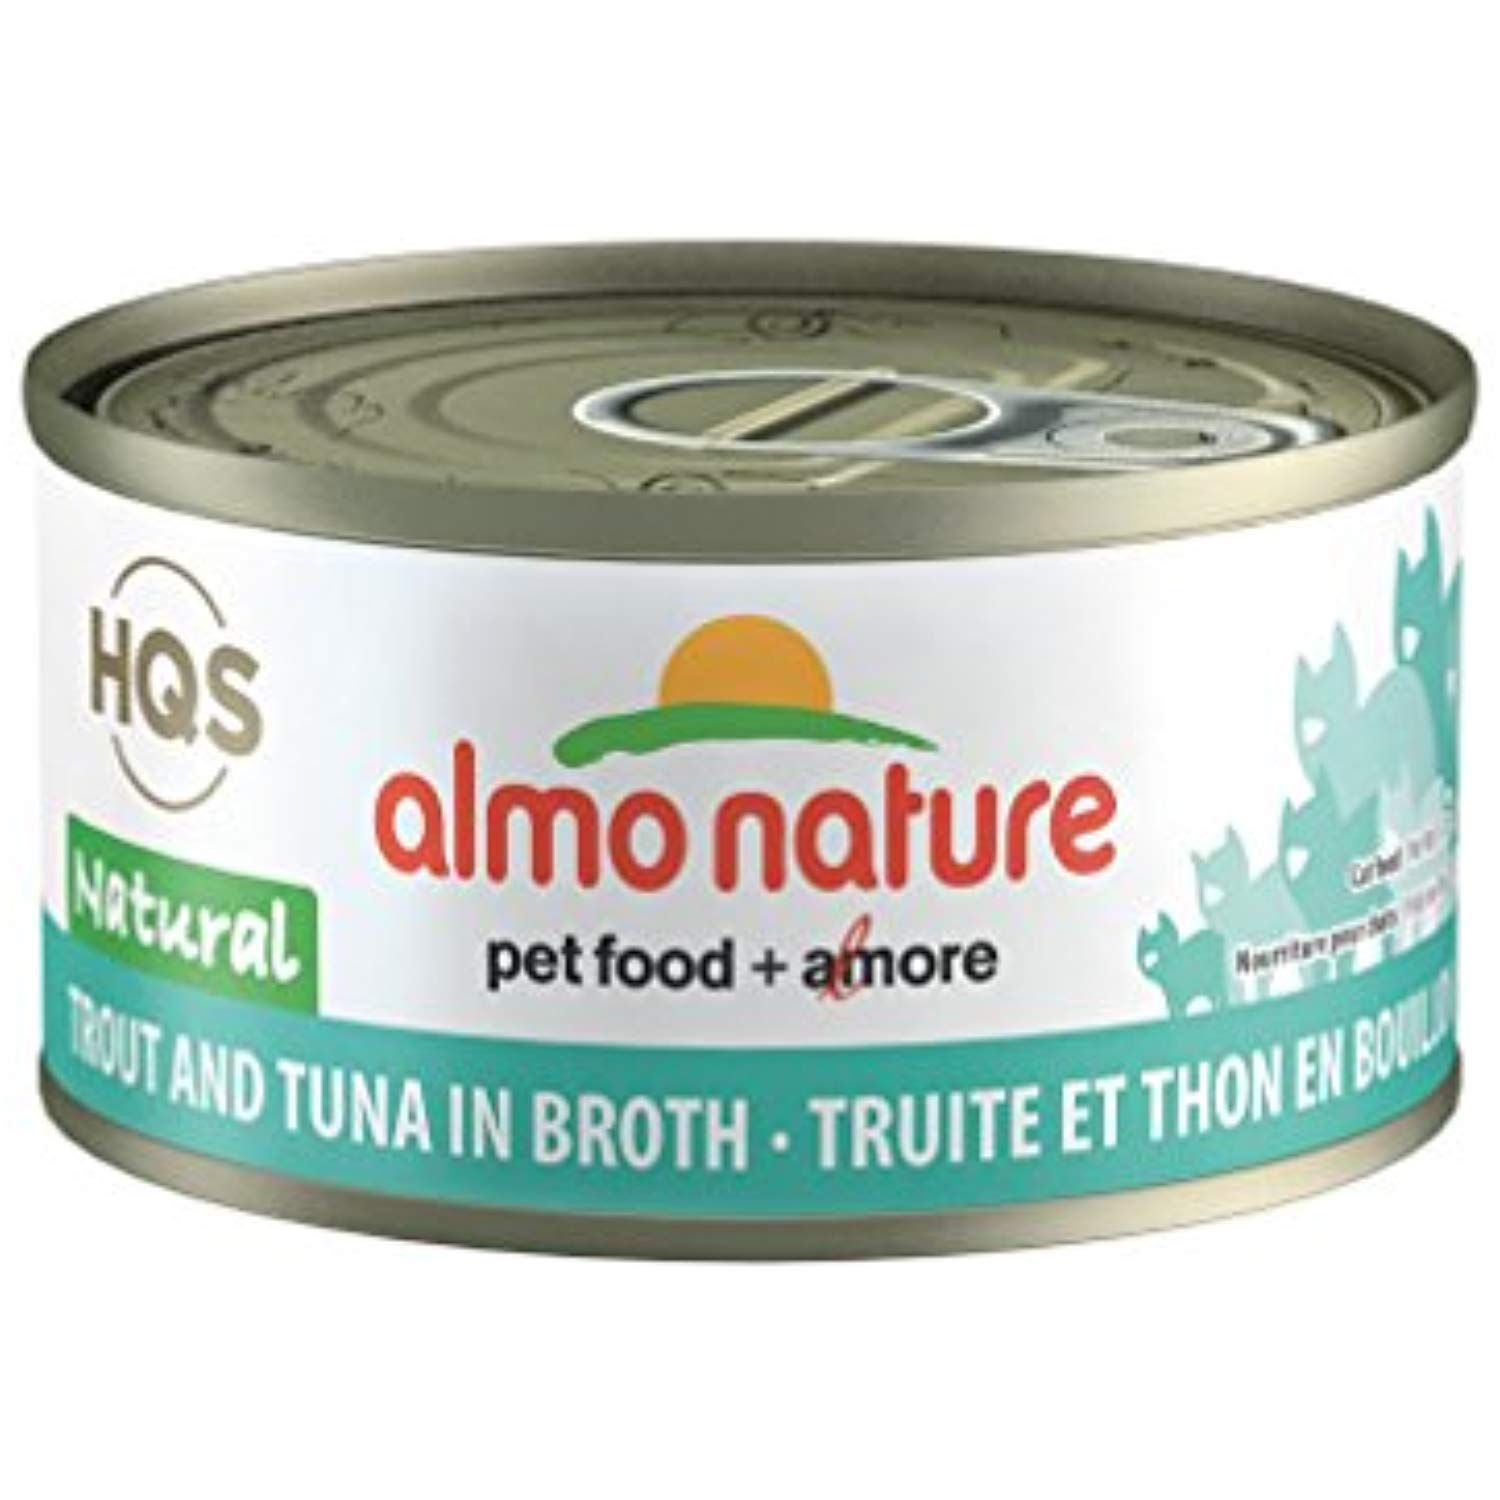 Almo Nature Hqs Legend Natural Cat Trout And Tuna 24 Pack Of 2 47 Oz 70g Cans Click Image To Review More With Images Canned Cat Food Natural Pet Food Natural Chicken